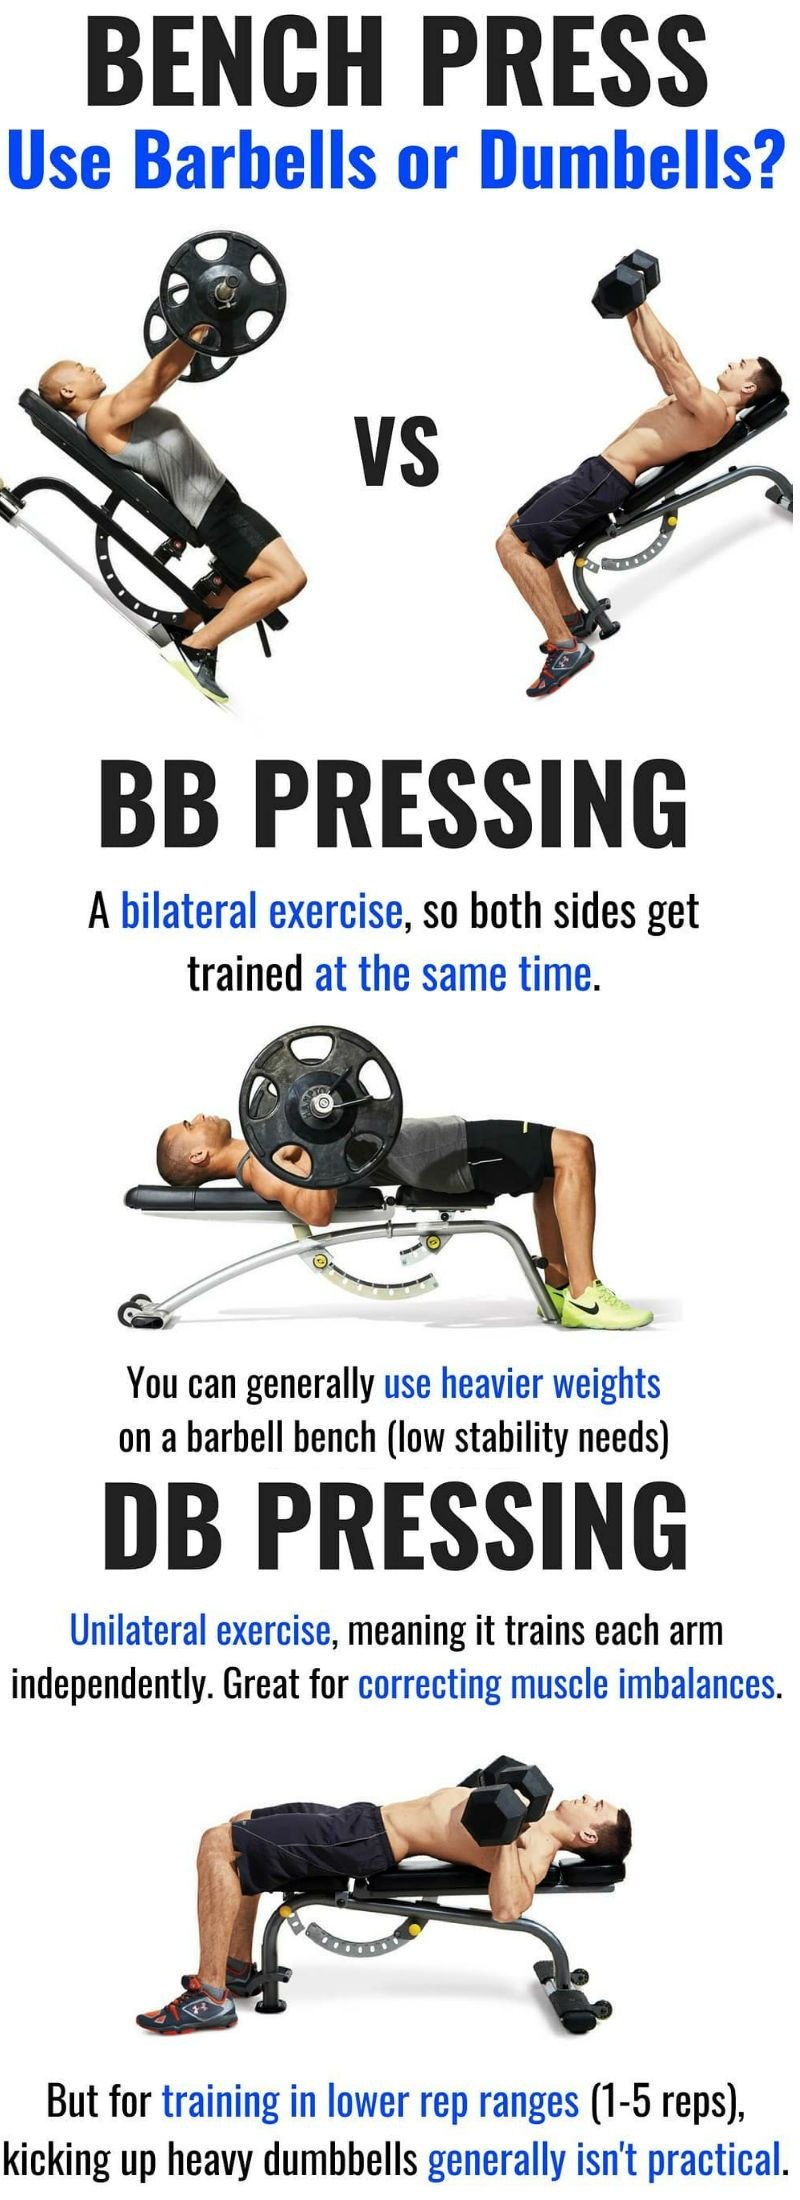 c566869eb54b72ff7e4e59c75ac8531b - How To Get Heavy Dumbbells Up For Bench Press